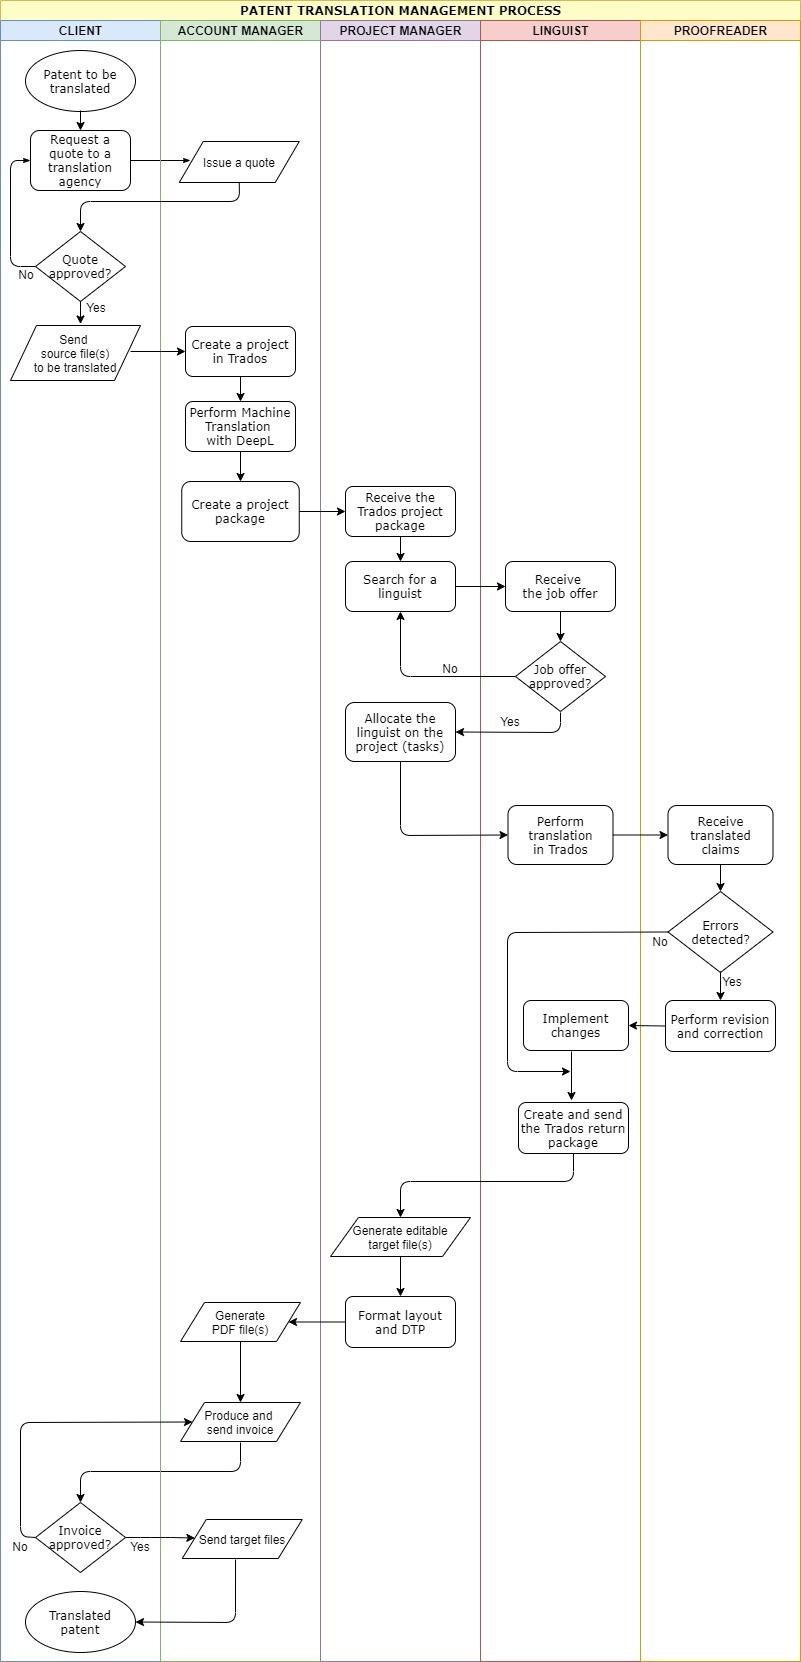 FIG. 9- Flow chart of the patent translation management process